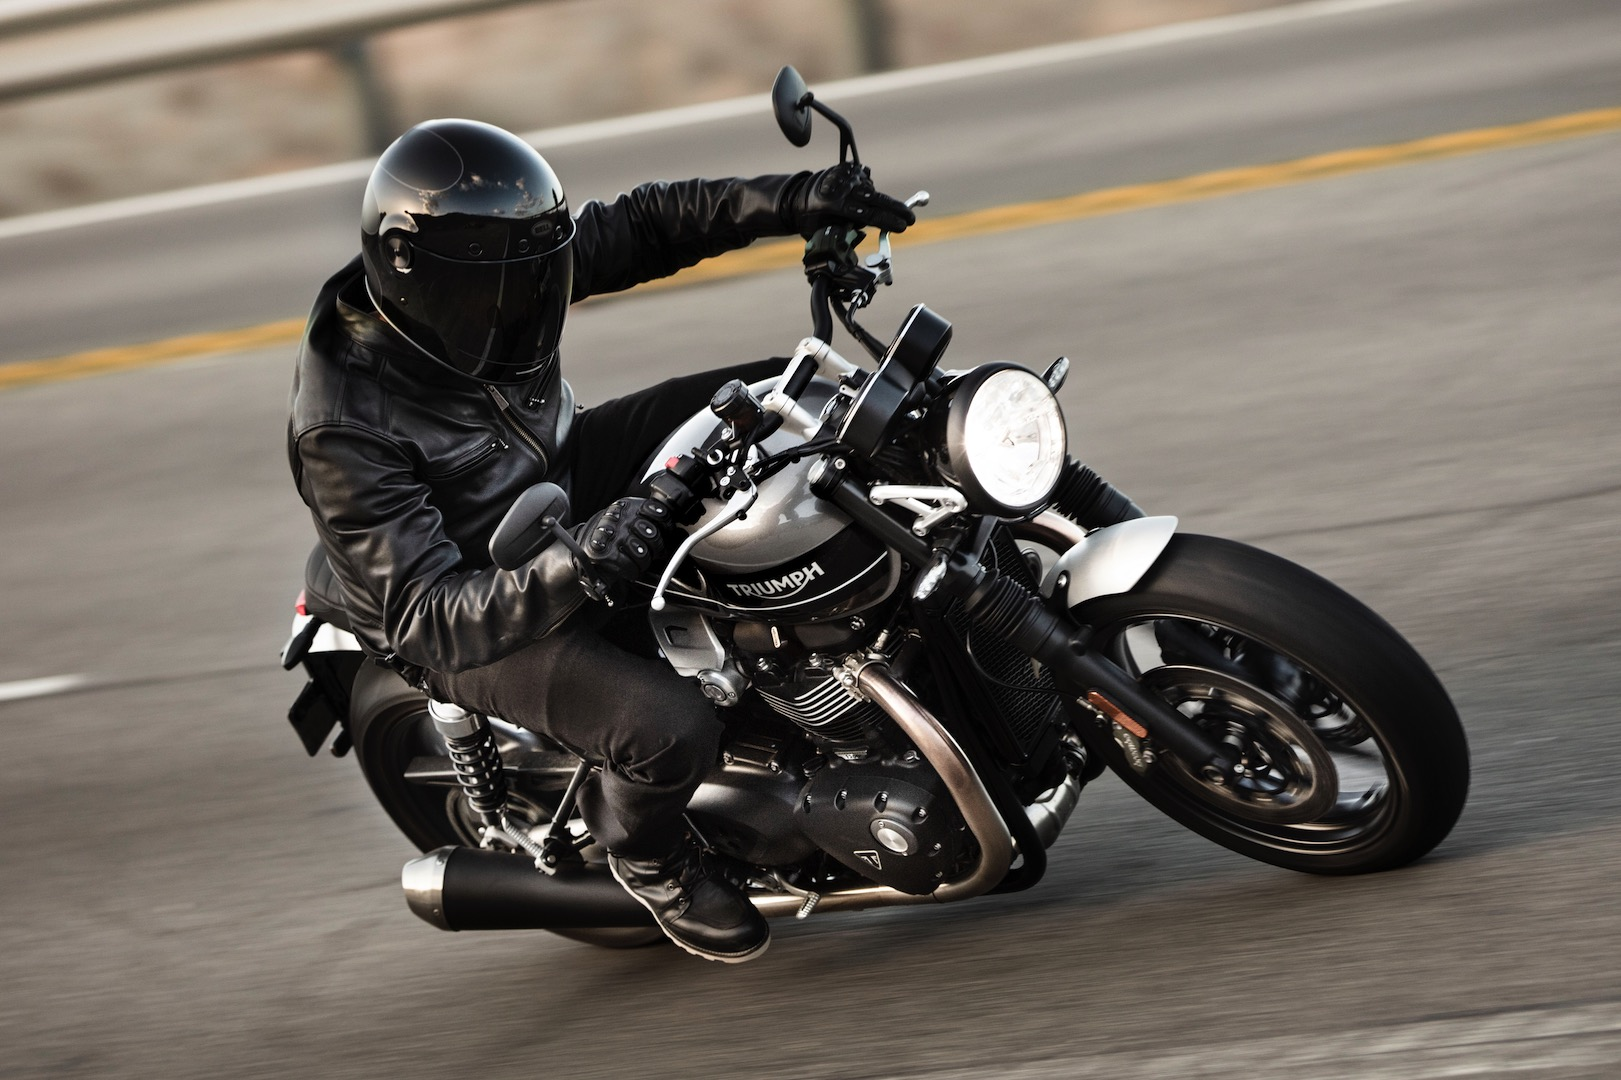 2019 Triumph Speed Twin First Look 12 Fast Facts